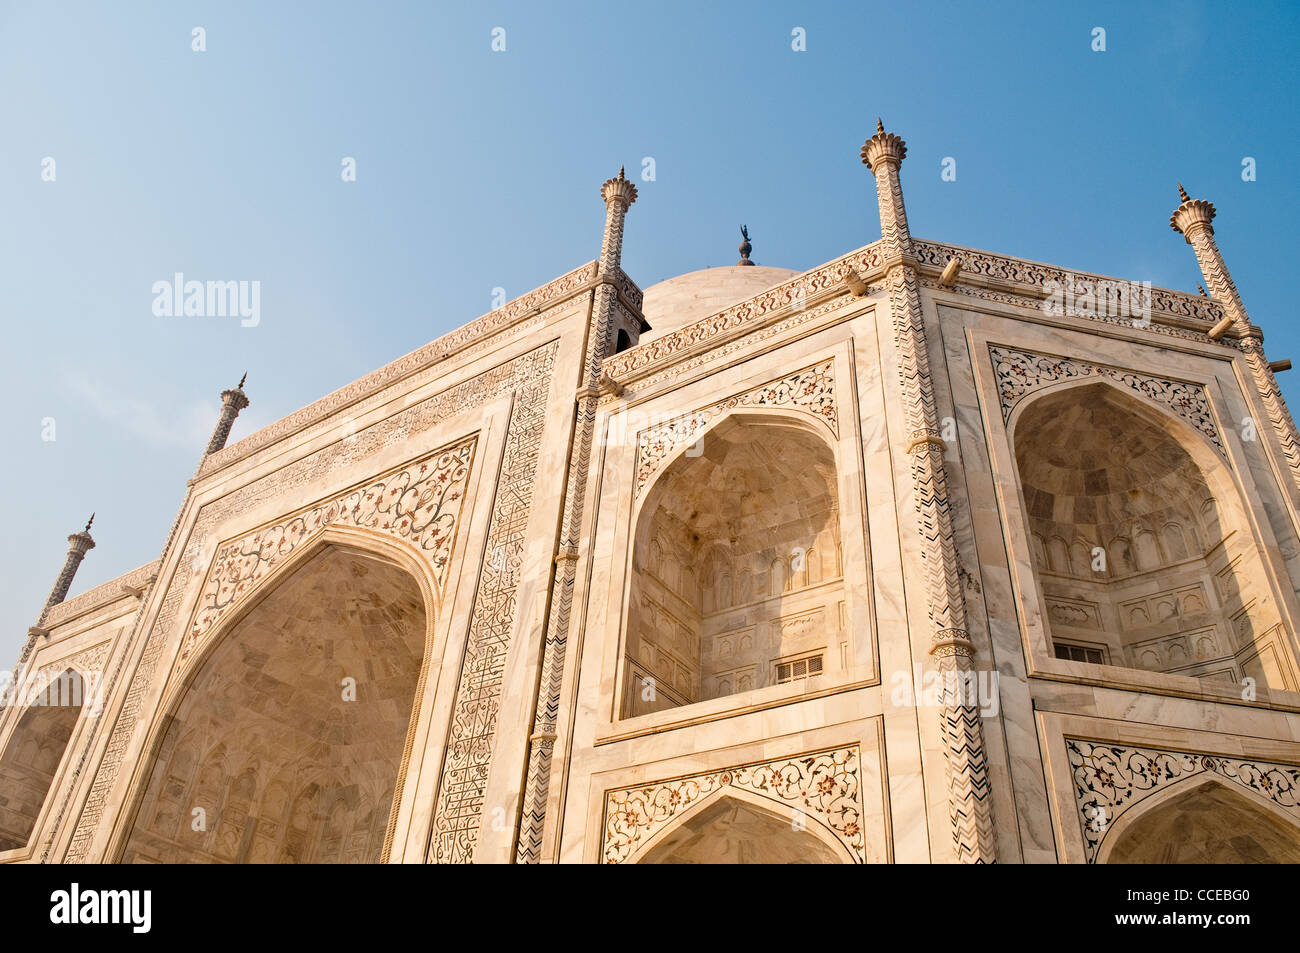 Detail with alcove and floral pattern of precious stones, Taj Mahal, Agra, India - Stock Image